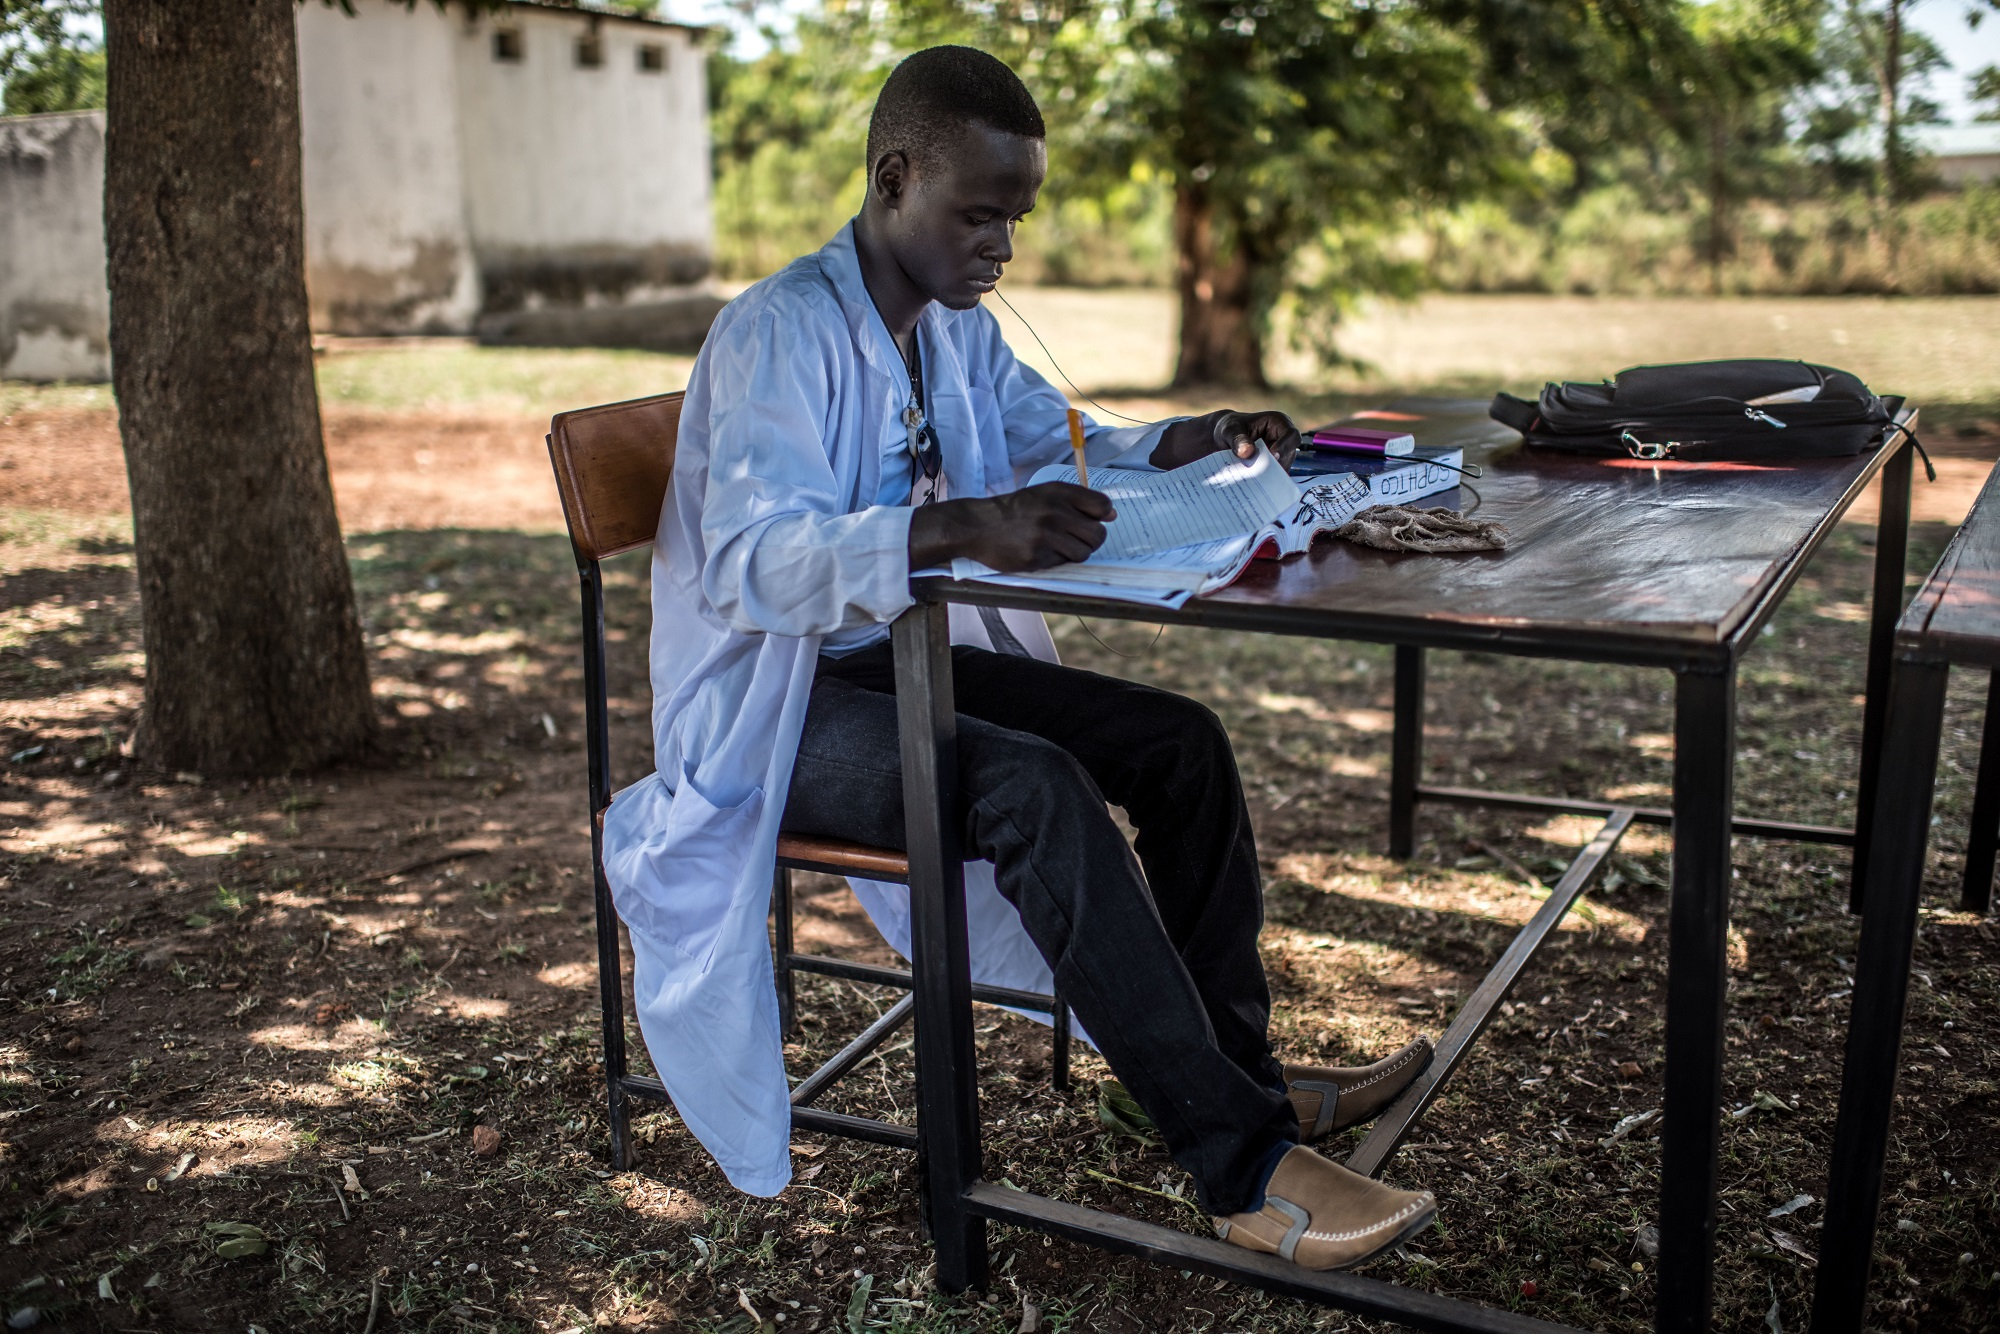 Students of the Soroti Pharmacy Schoolrelax and revise in the shade of a tree.